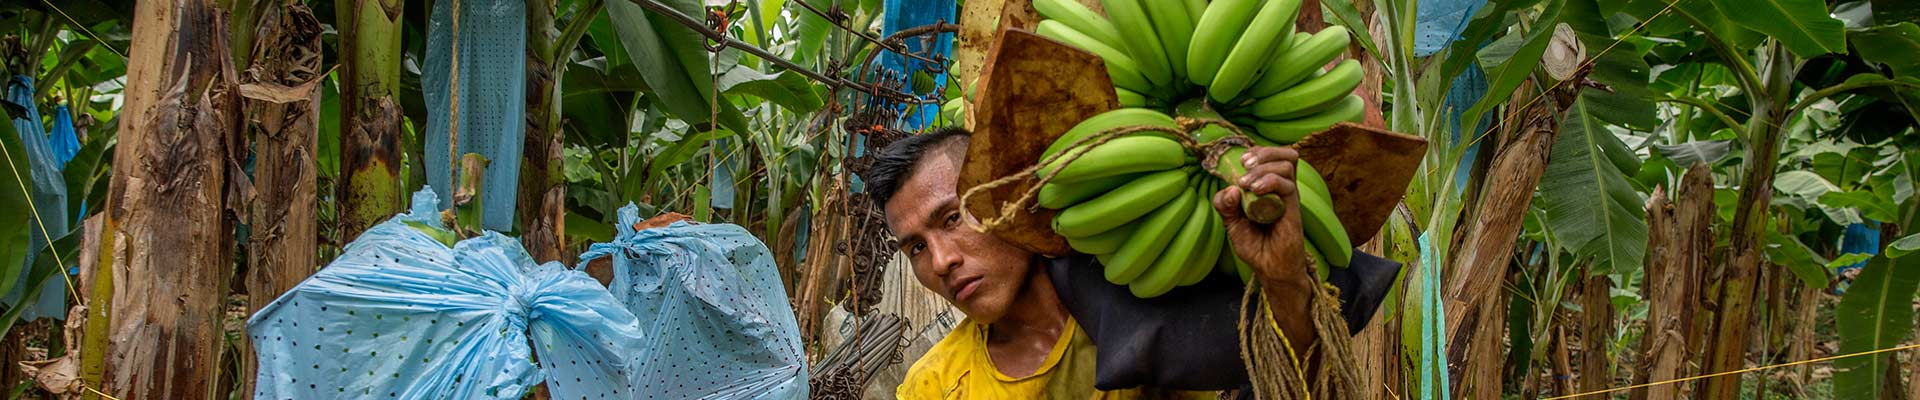 AgroFair-Fairtrade-Bio-Organic-Bananas-Fruit-who-we-are-slider-01